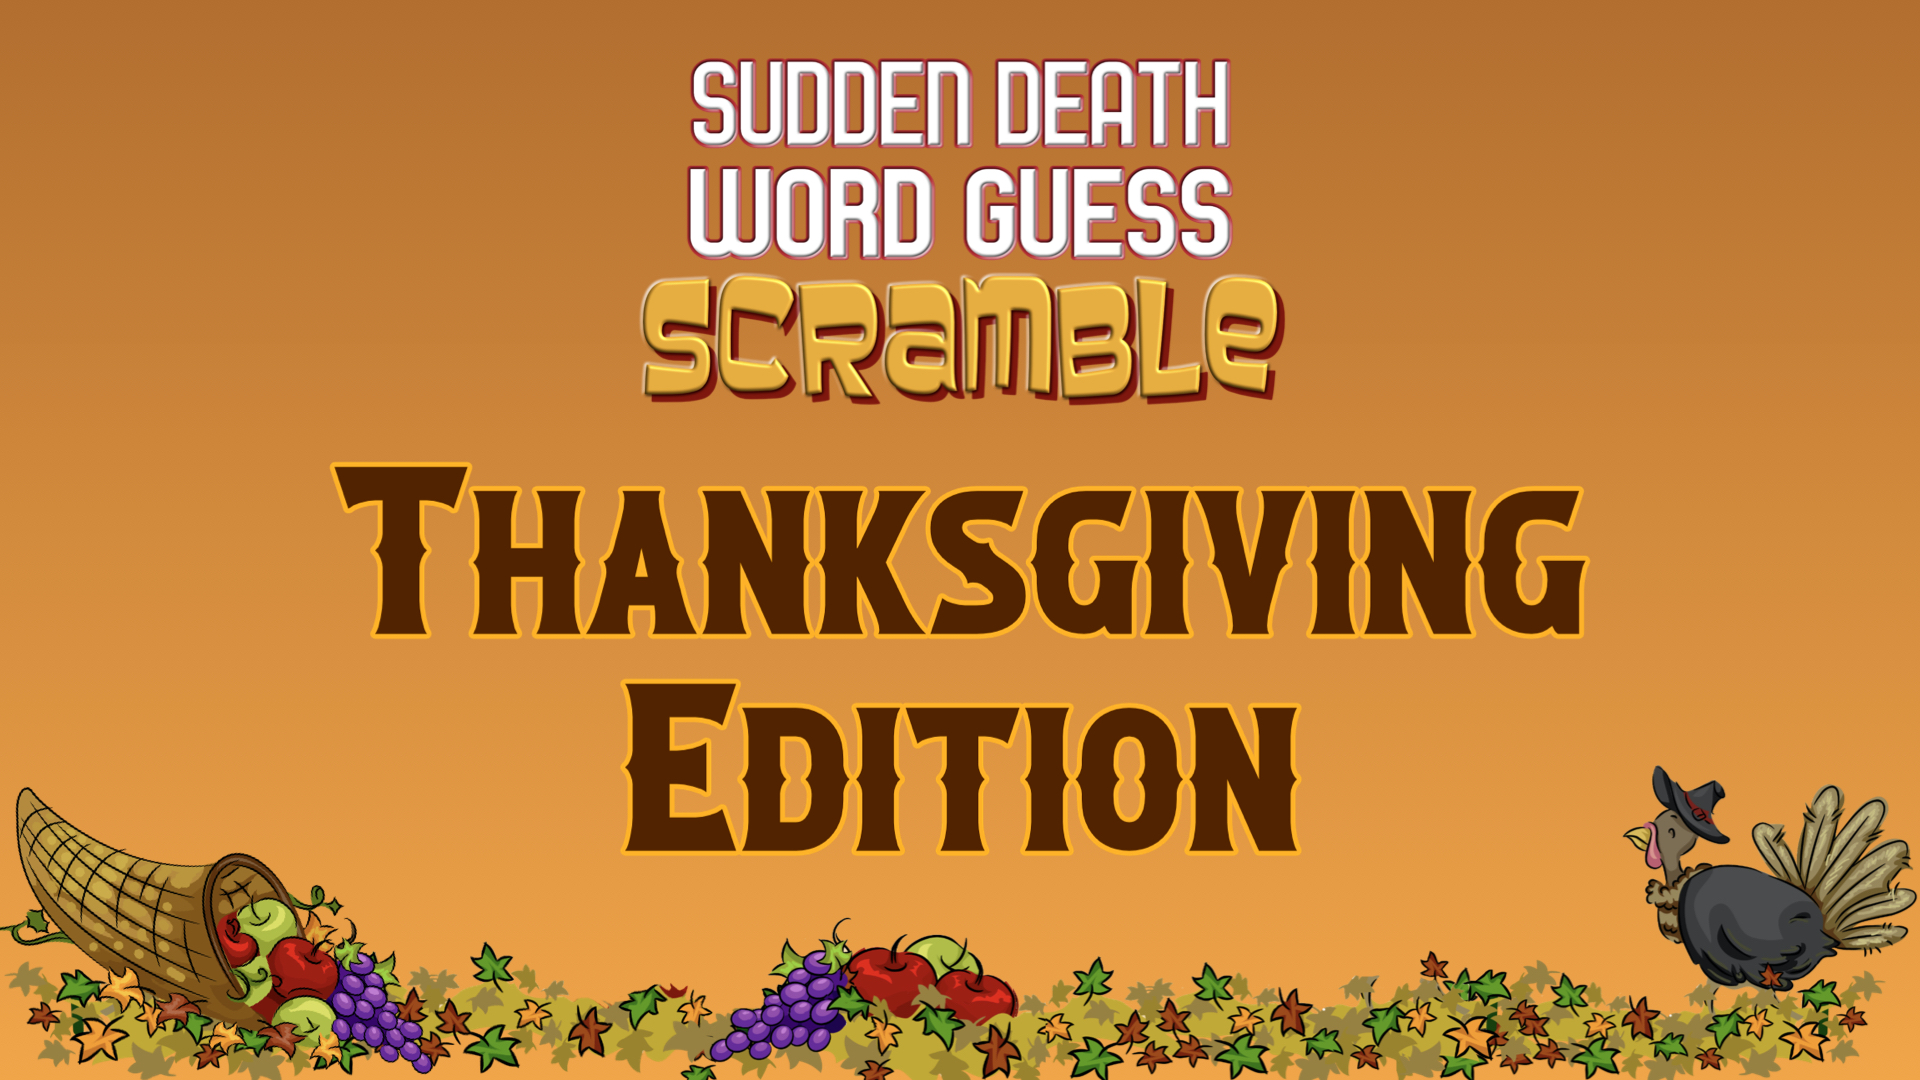 Sudden Death Word Guess Scramble Thanksgiving Edition